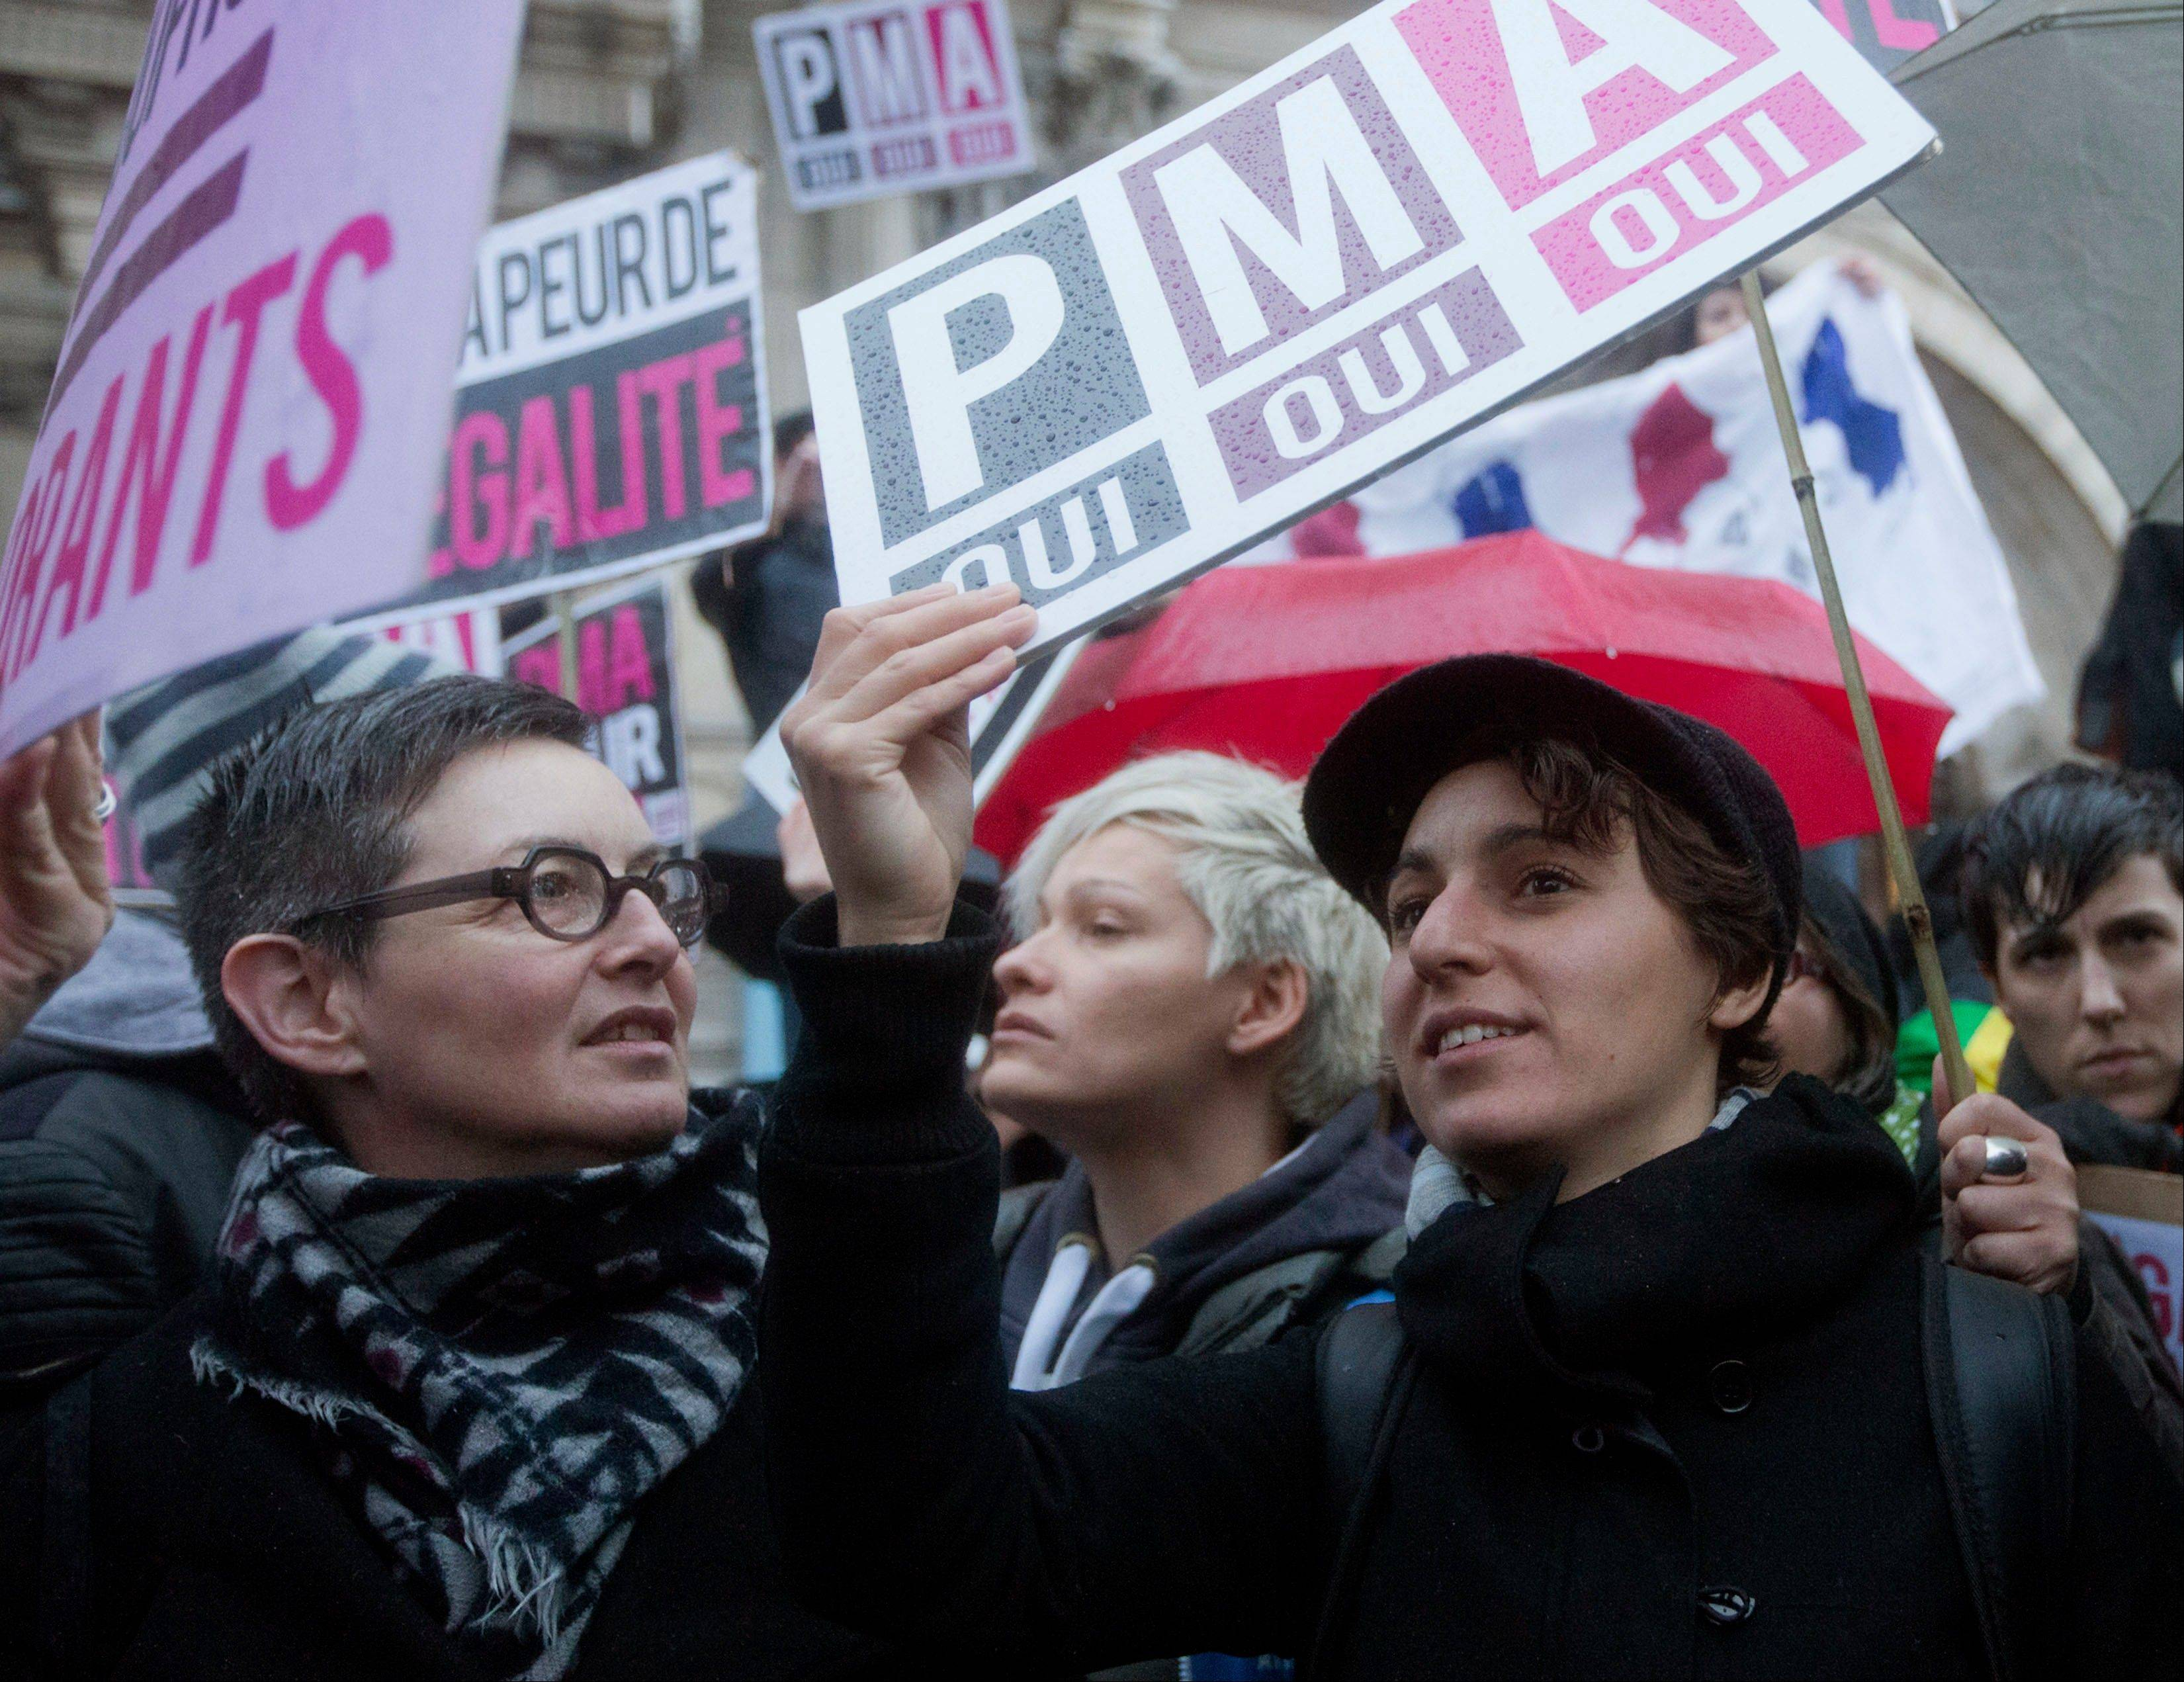 People demonstrate against for equal rights with placards and flags in Paris. Wednesday, April 10, 2013. The French Senate voted Friday to legalize same-sex marriage in France, putting a landmark bill on track to become law by summer.